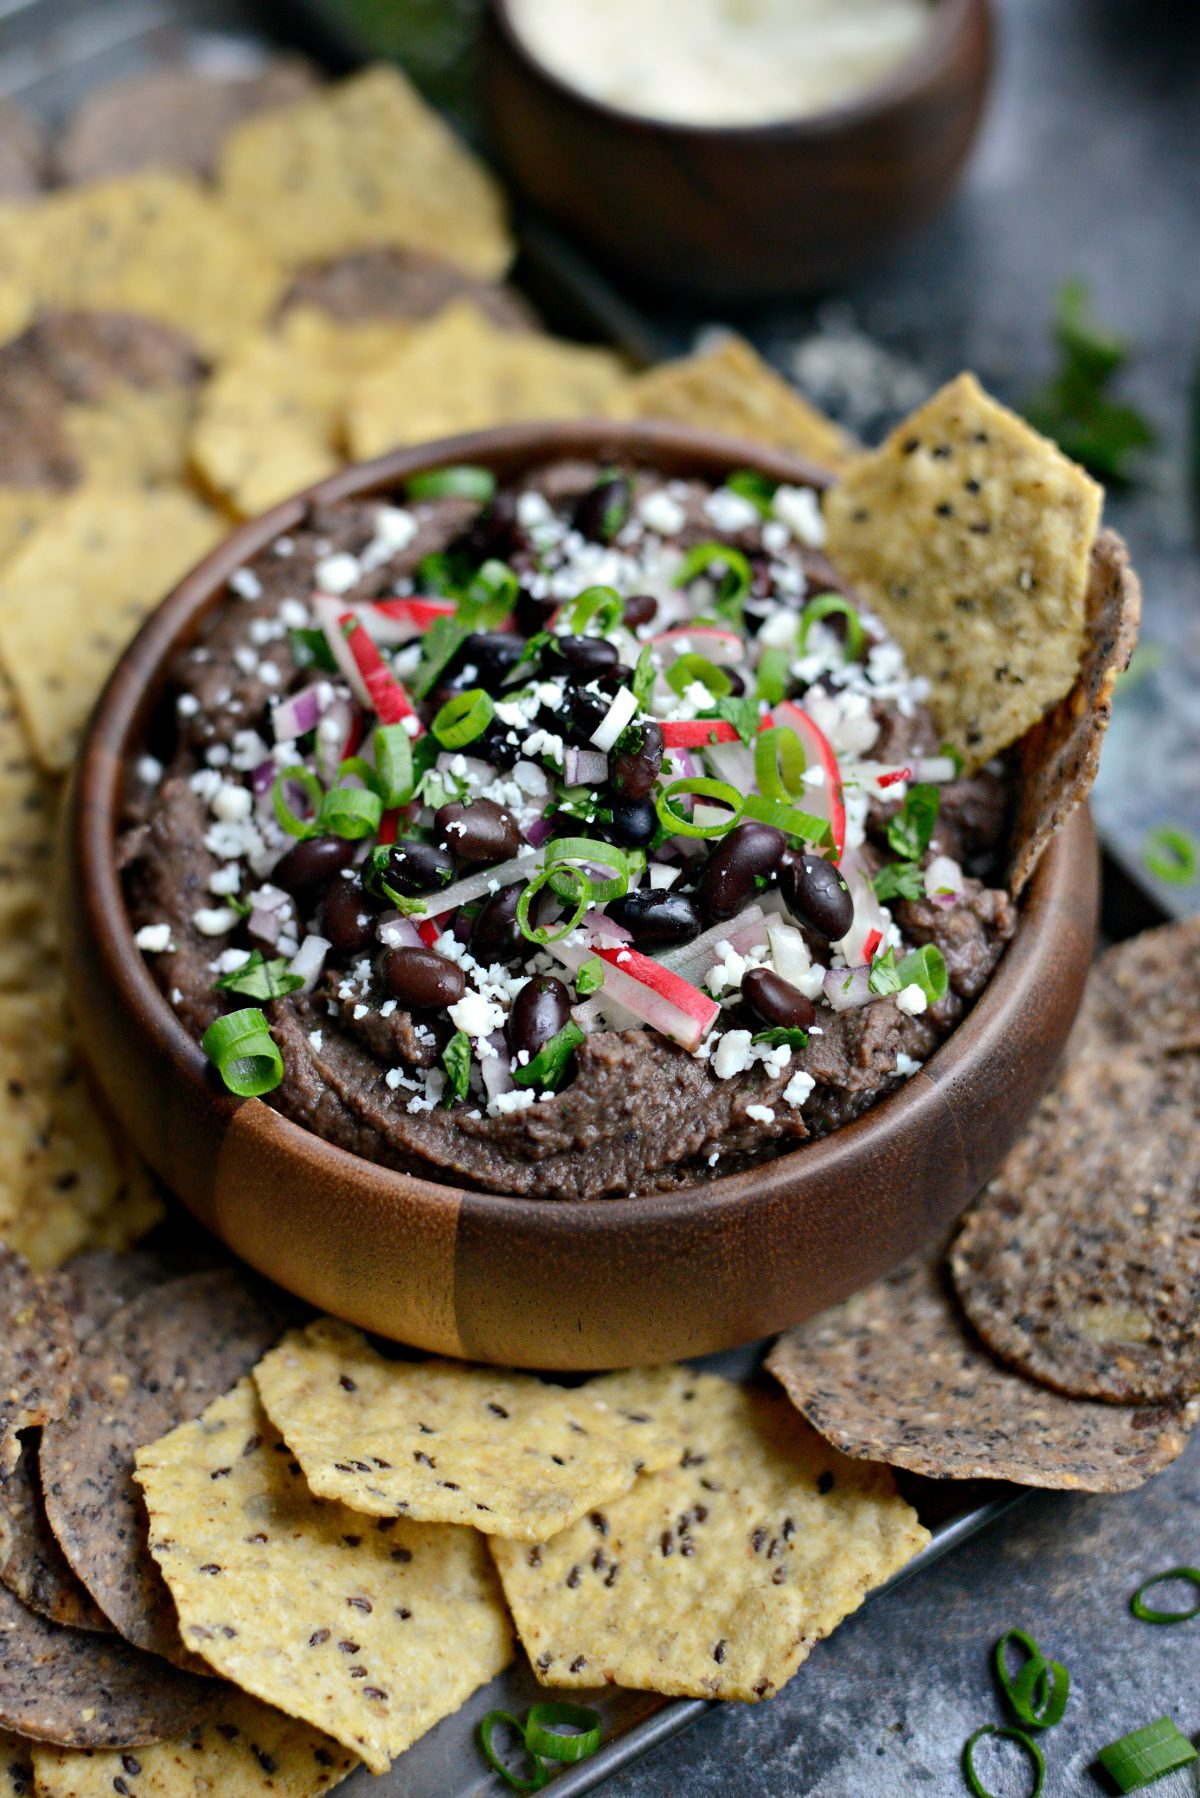 Smoky Chipotle Black Bean Dip with Radish Salsa l SimplyScratch.com